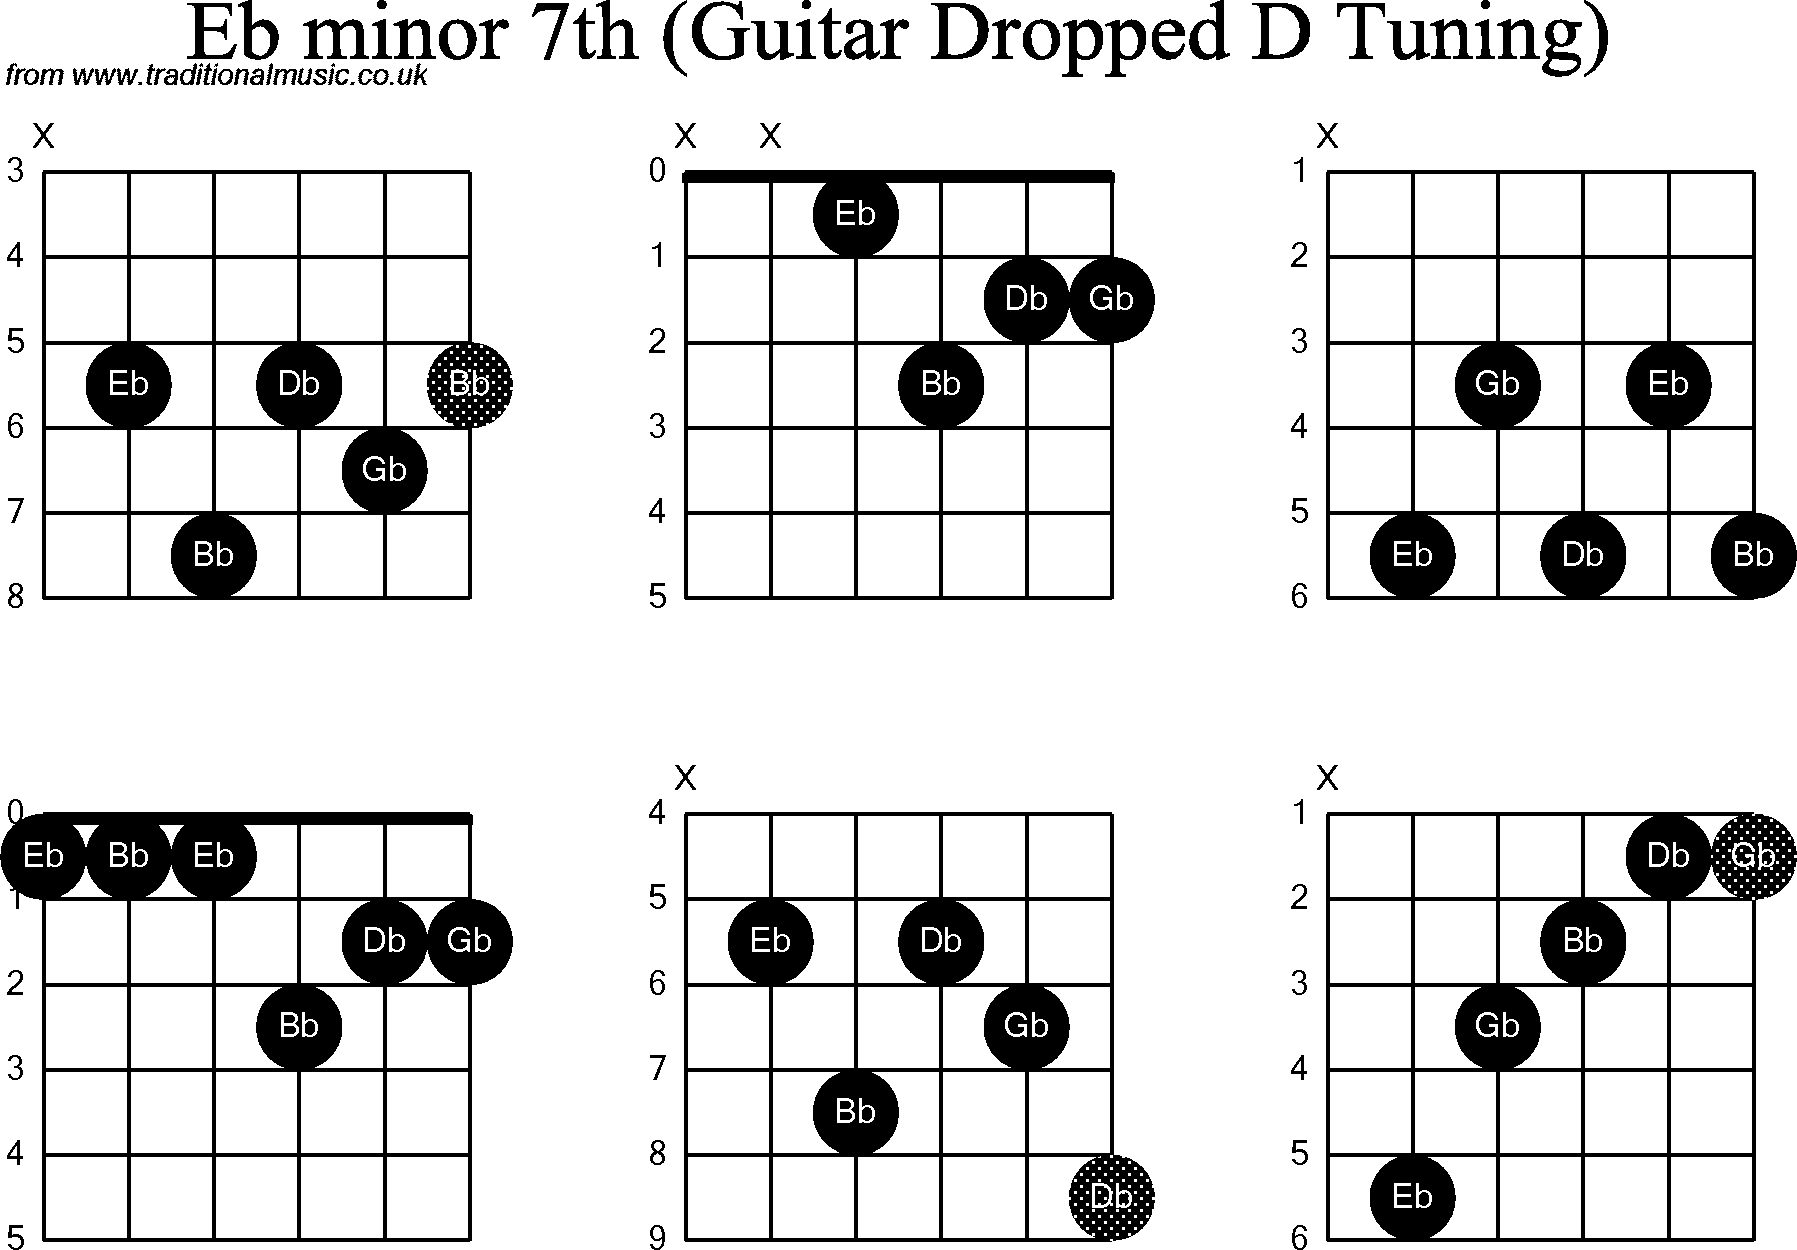 Chord Diagrams For Dropped D Guitardadgbe Eb Minor7th